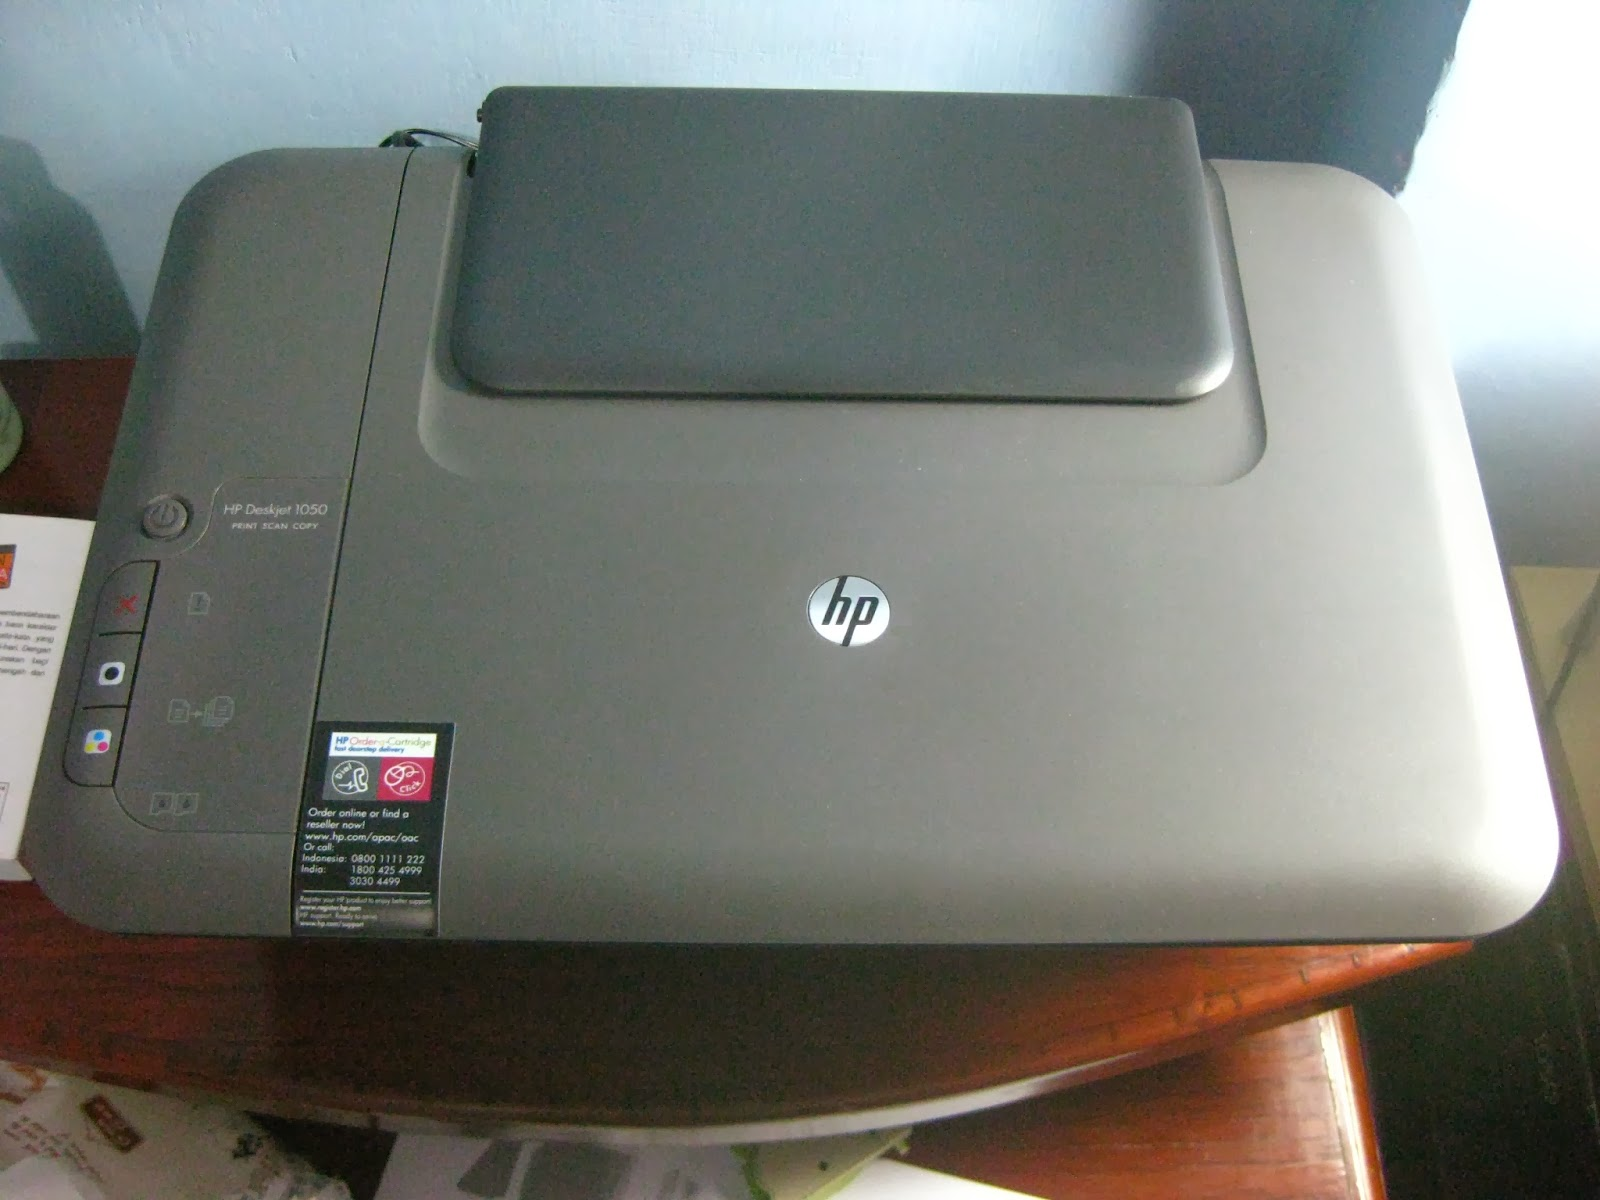 hp deskjet 1050 scan to pdf